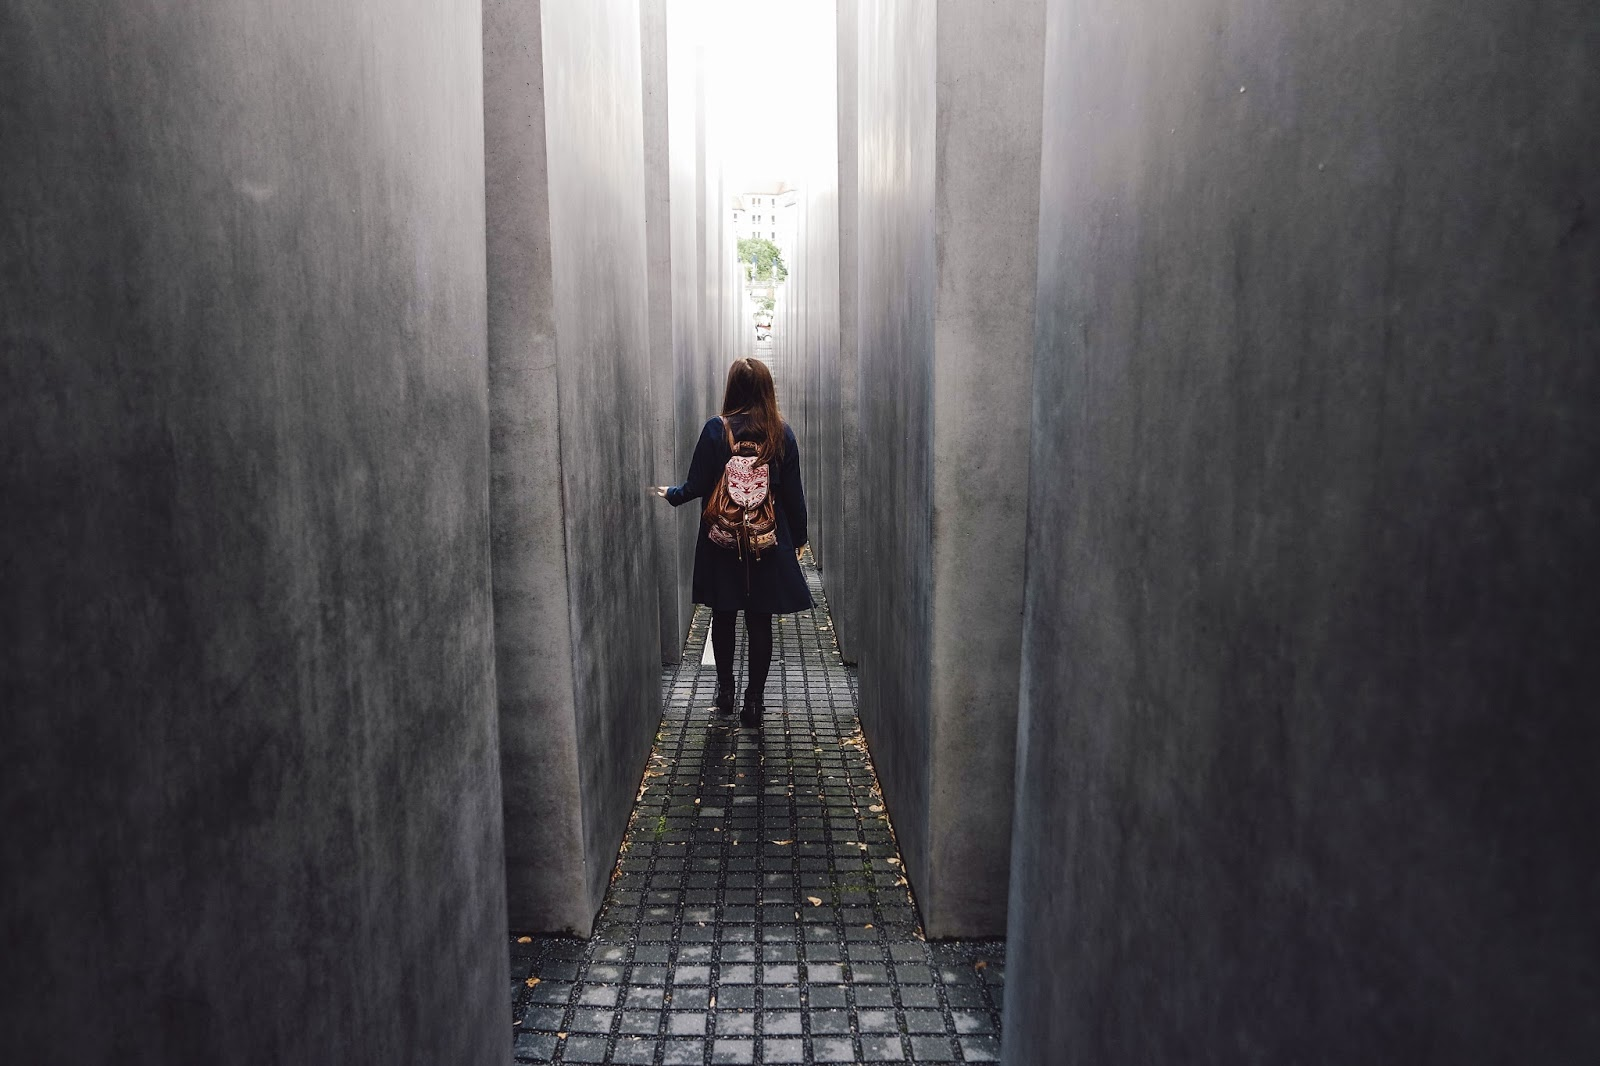 Memorial to the Murdered Jews of Europe berlin 2